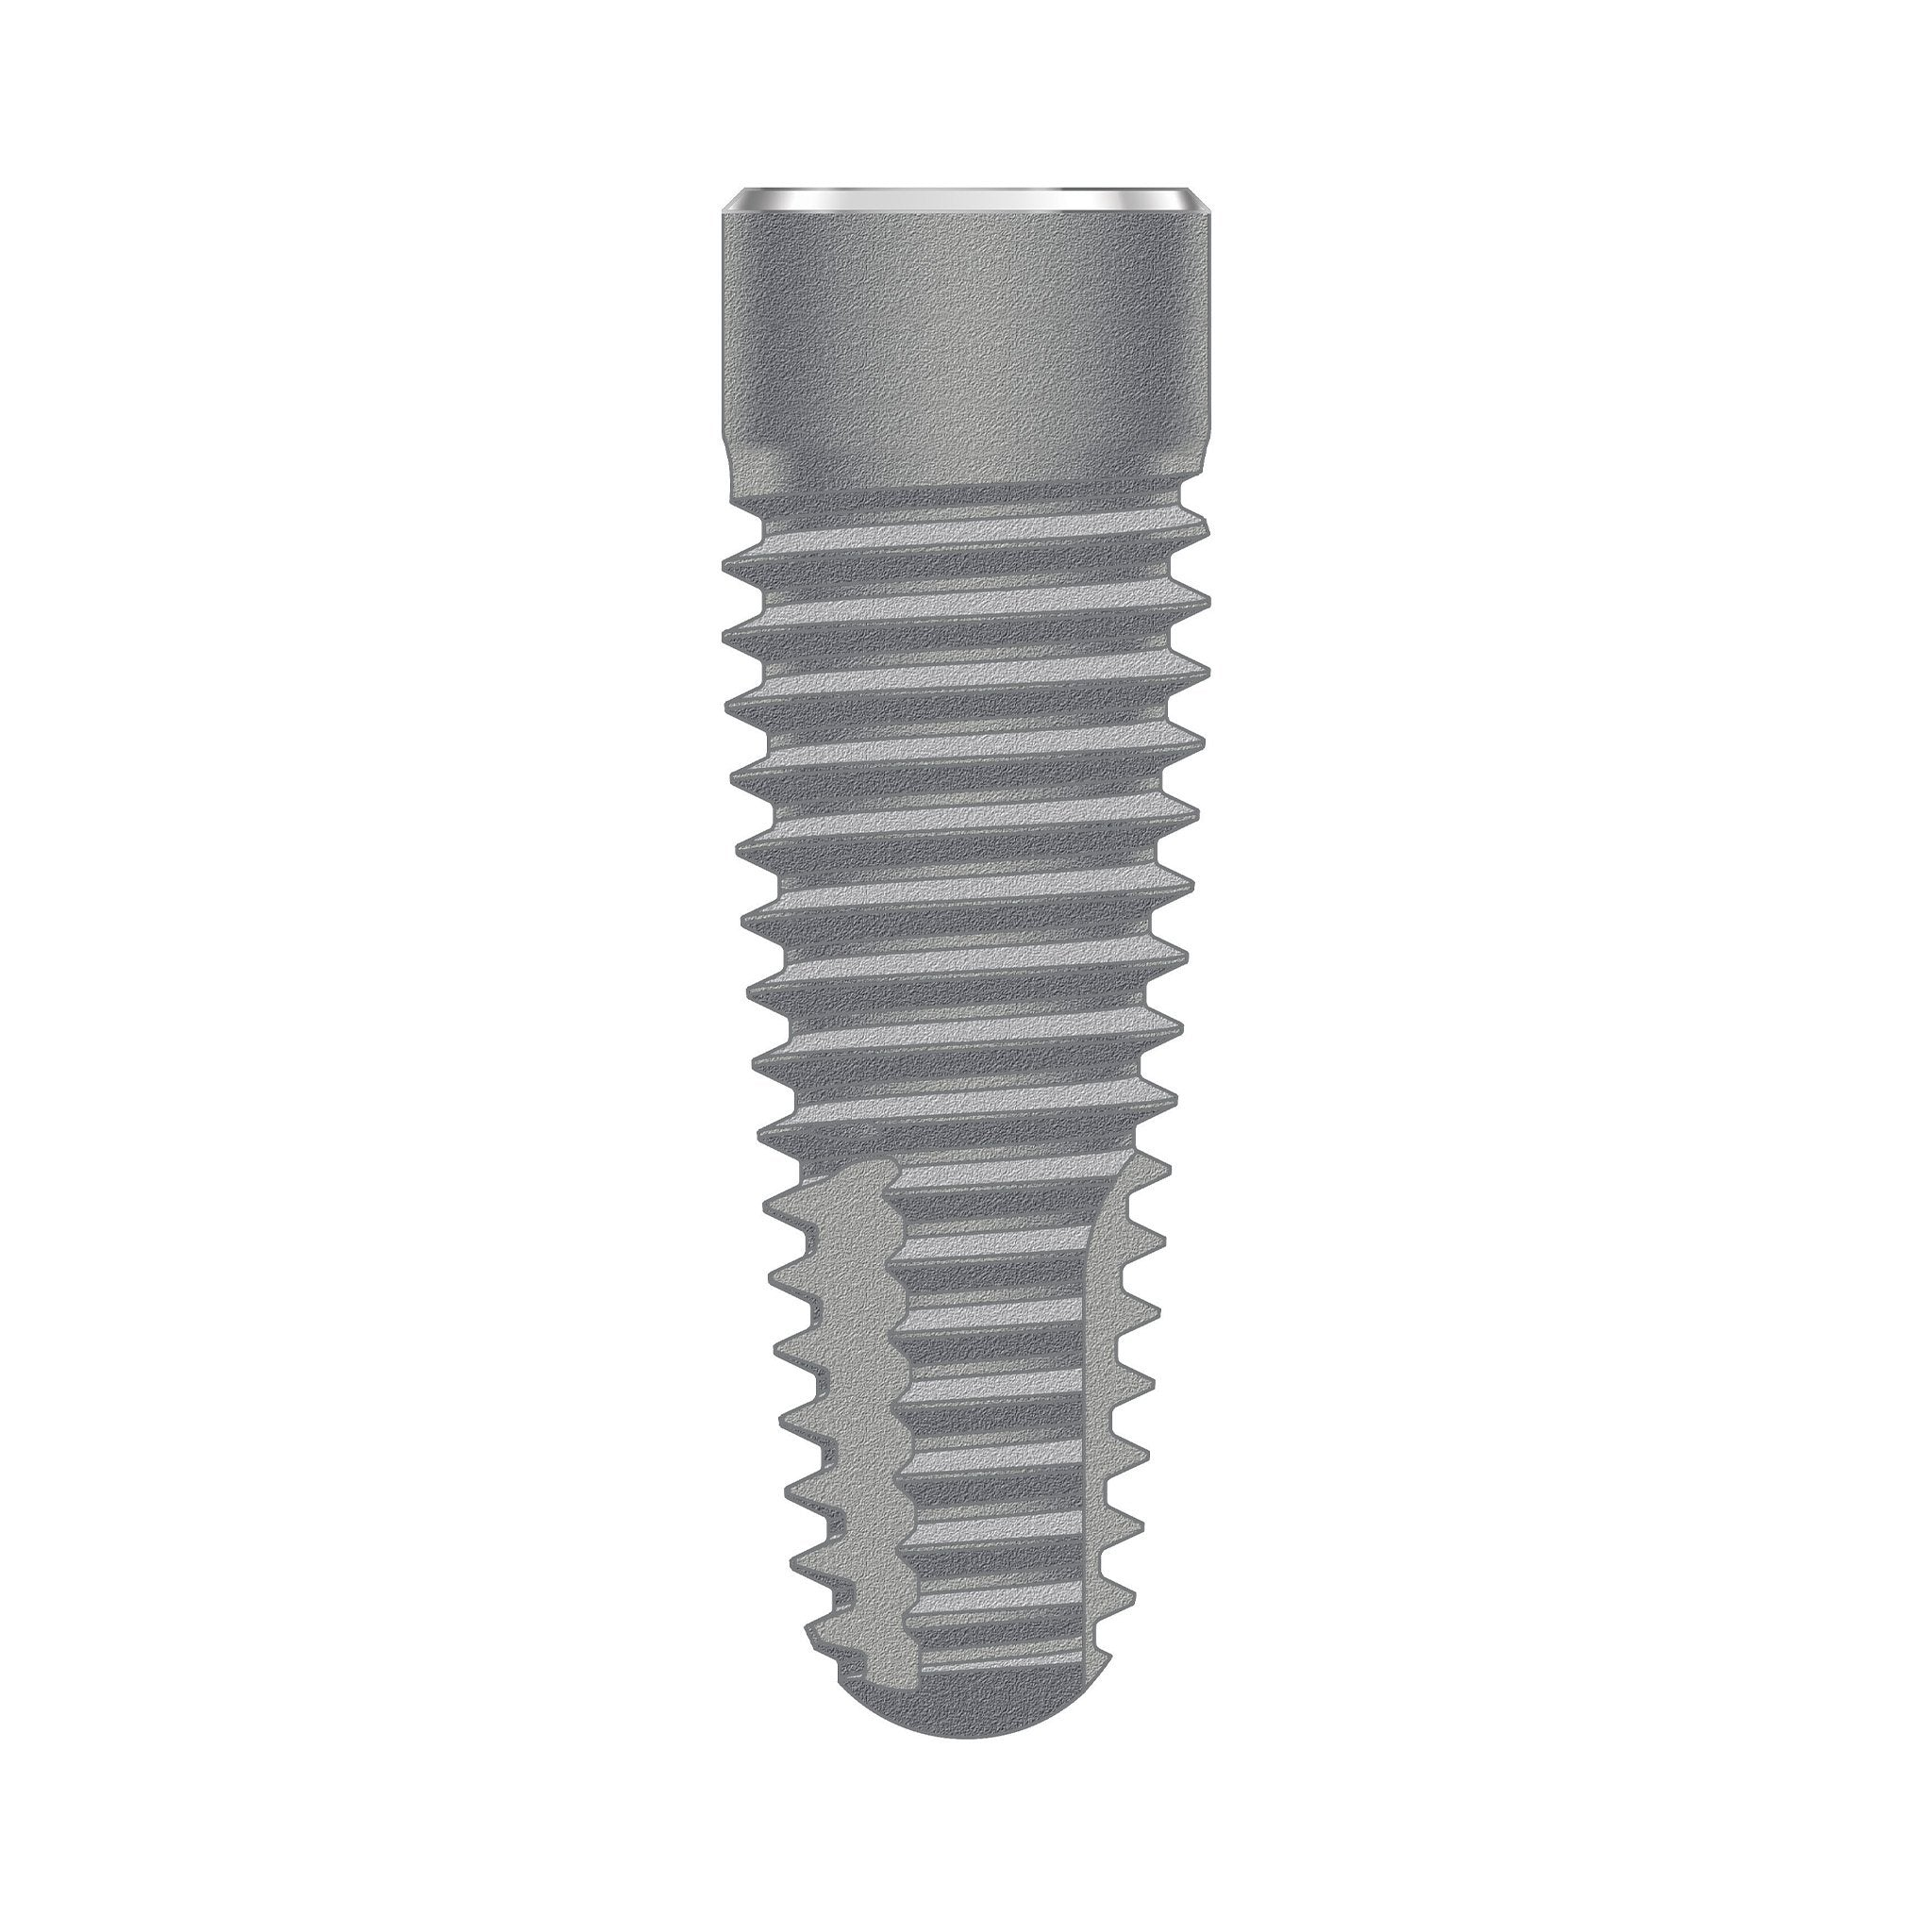 PrimaConnex® Tapered Implant RD Ø 4.1 x 10mm | K3